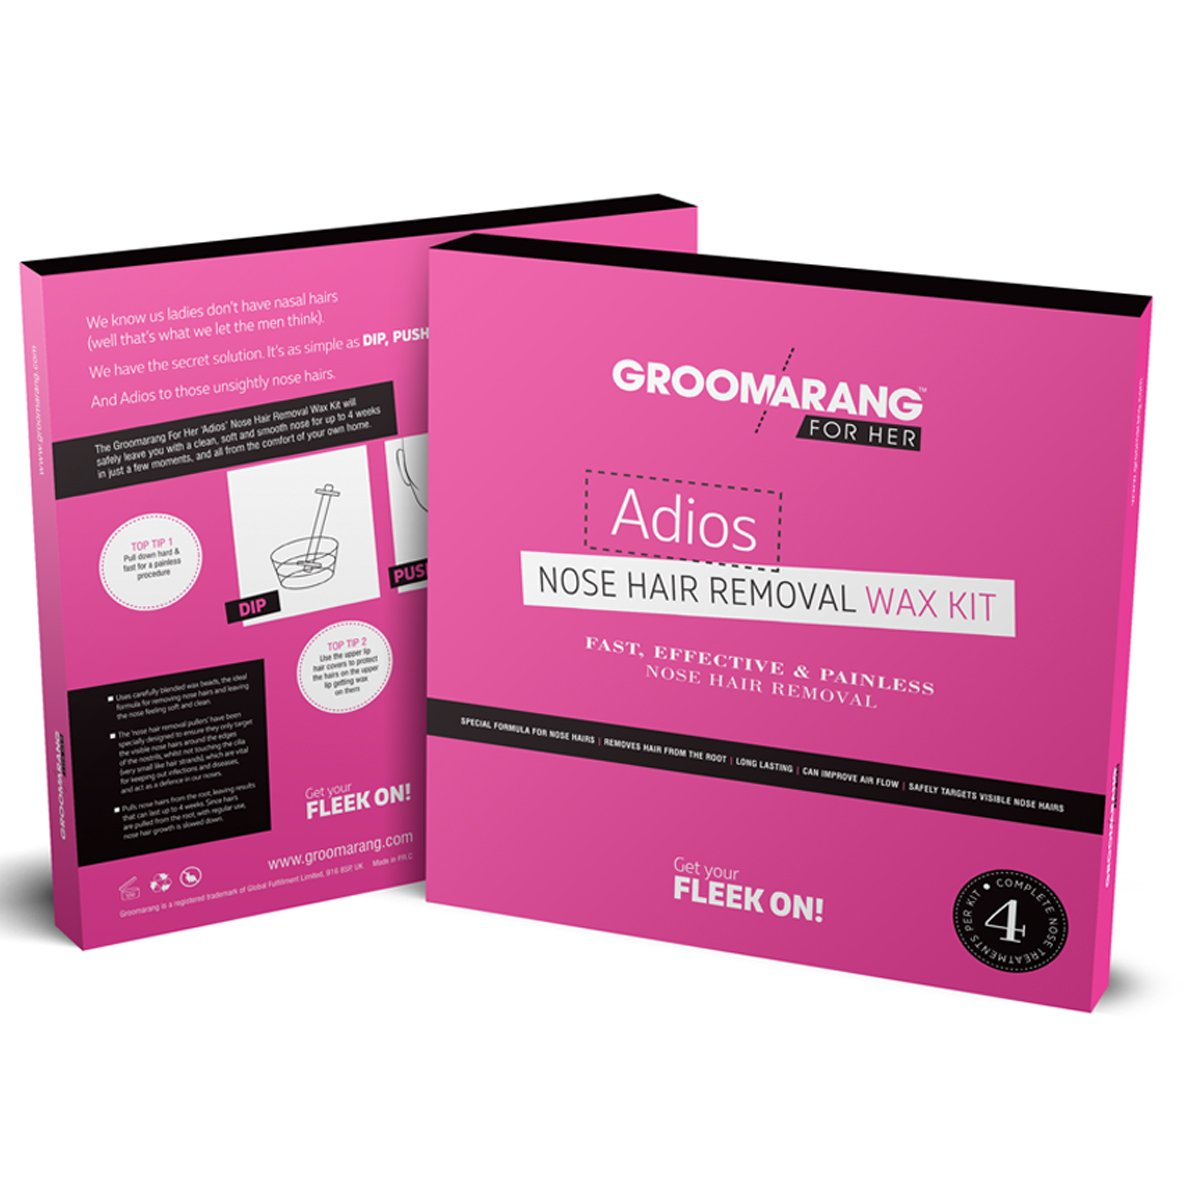 Groomarang For Her- Adios Nose Hair Removal Wax Kit For Her, Hair Removal by Forever Cosmetics